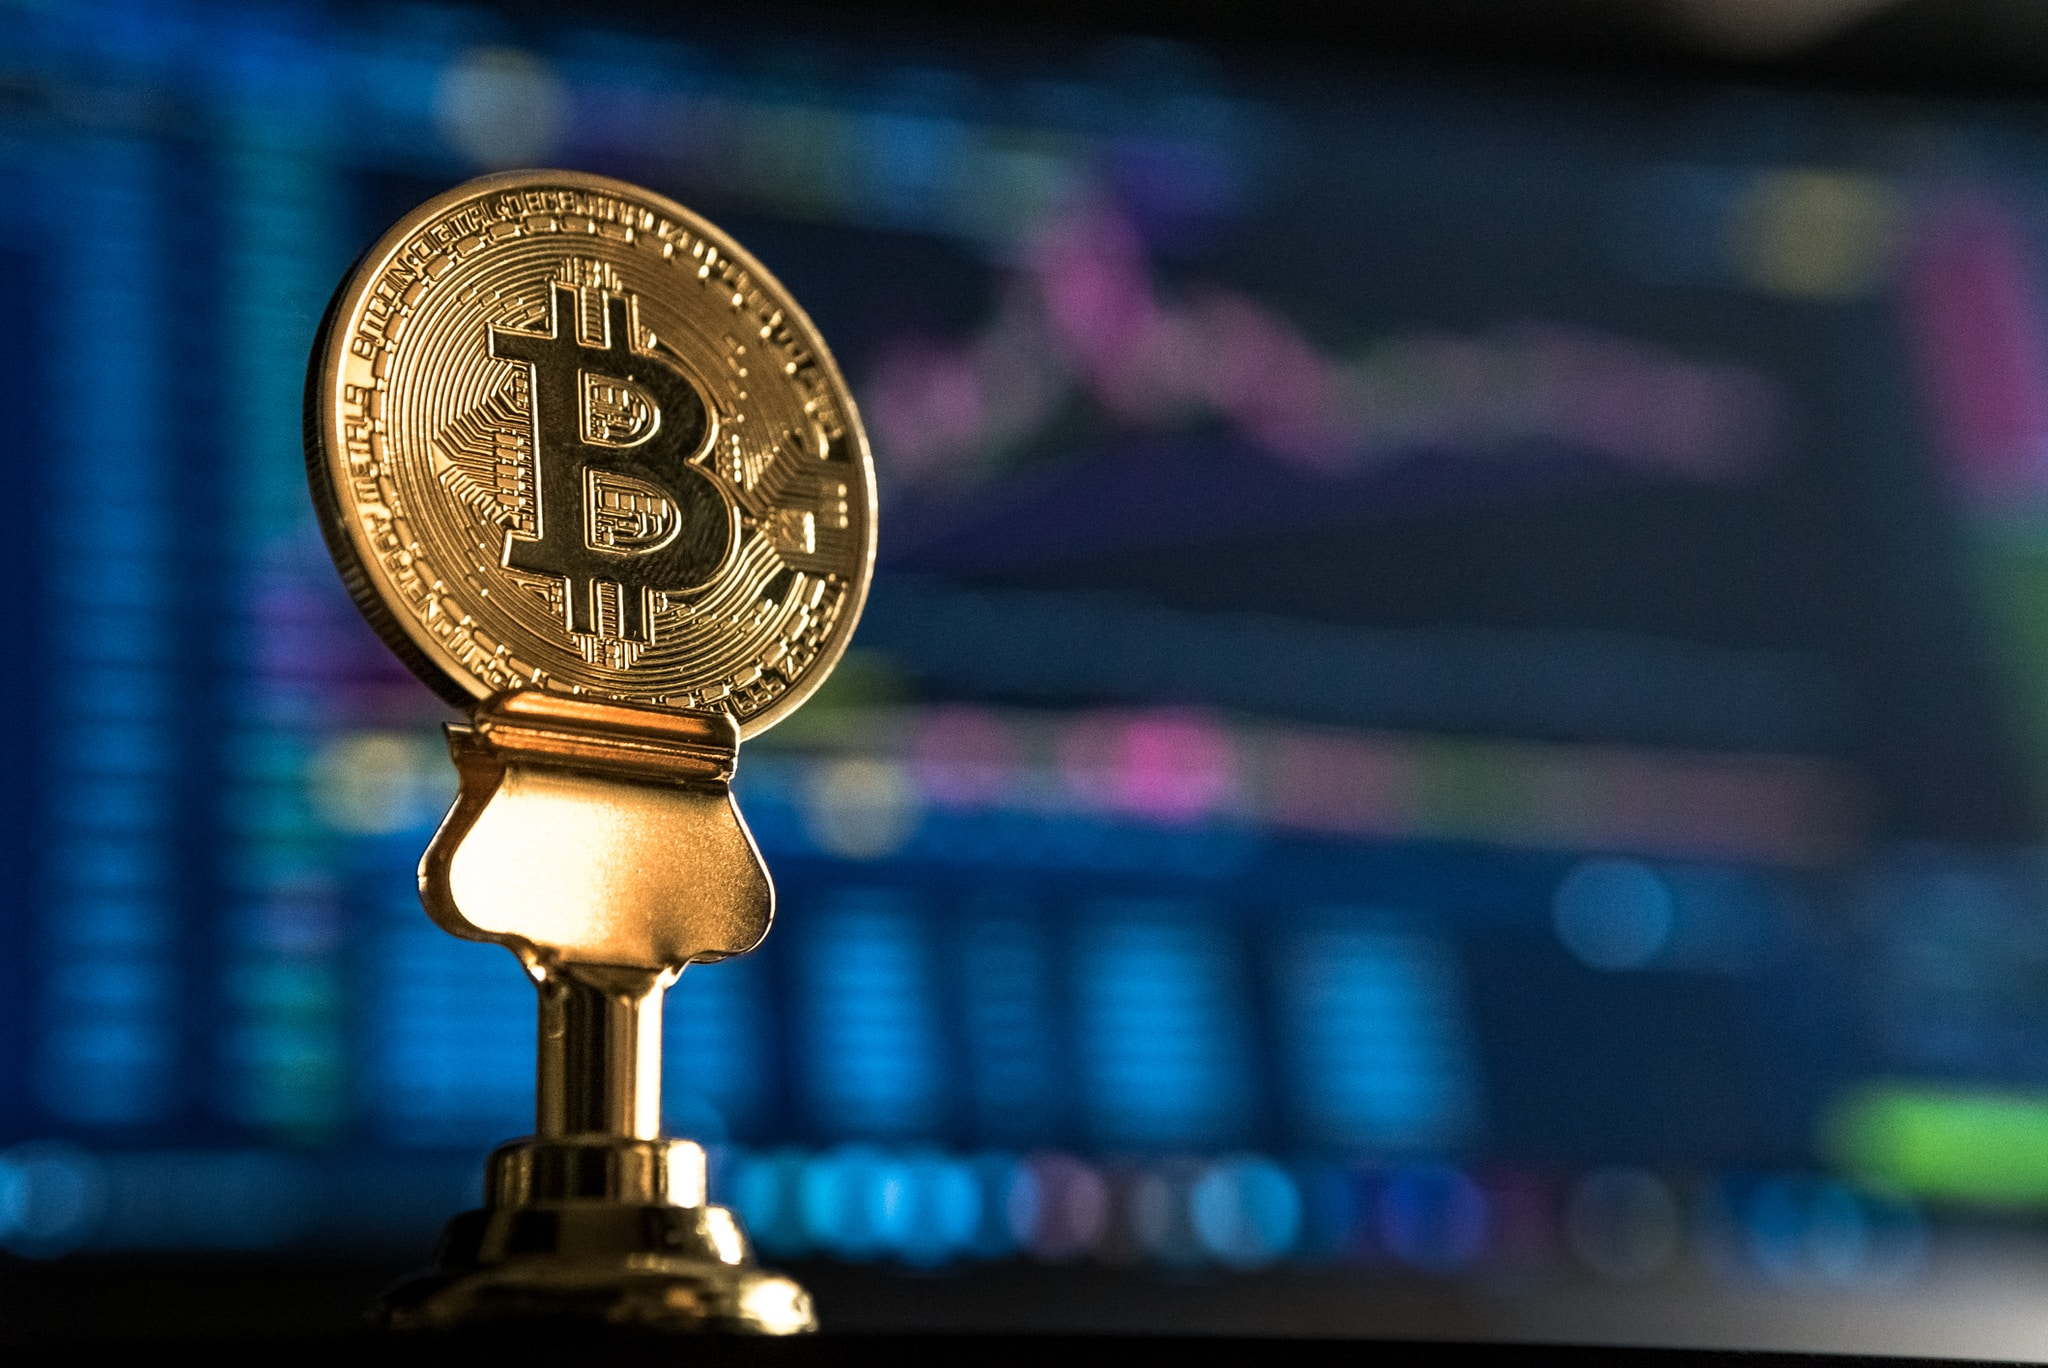 Reasons as to why some of the Bitcoin application development companies are successful